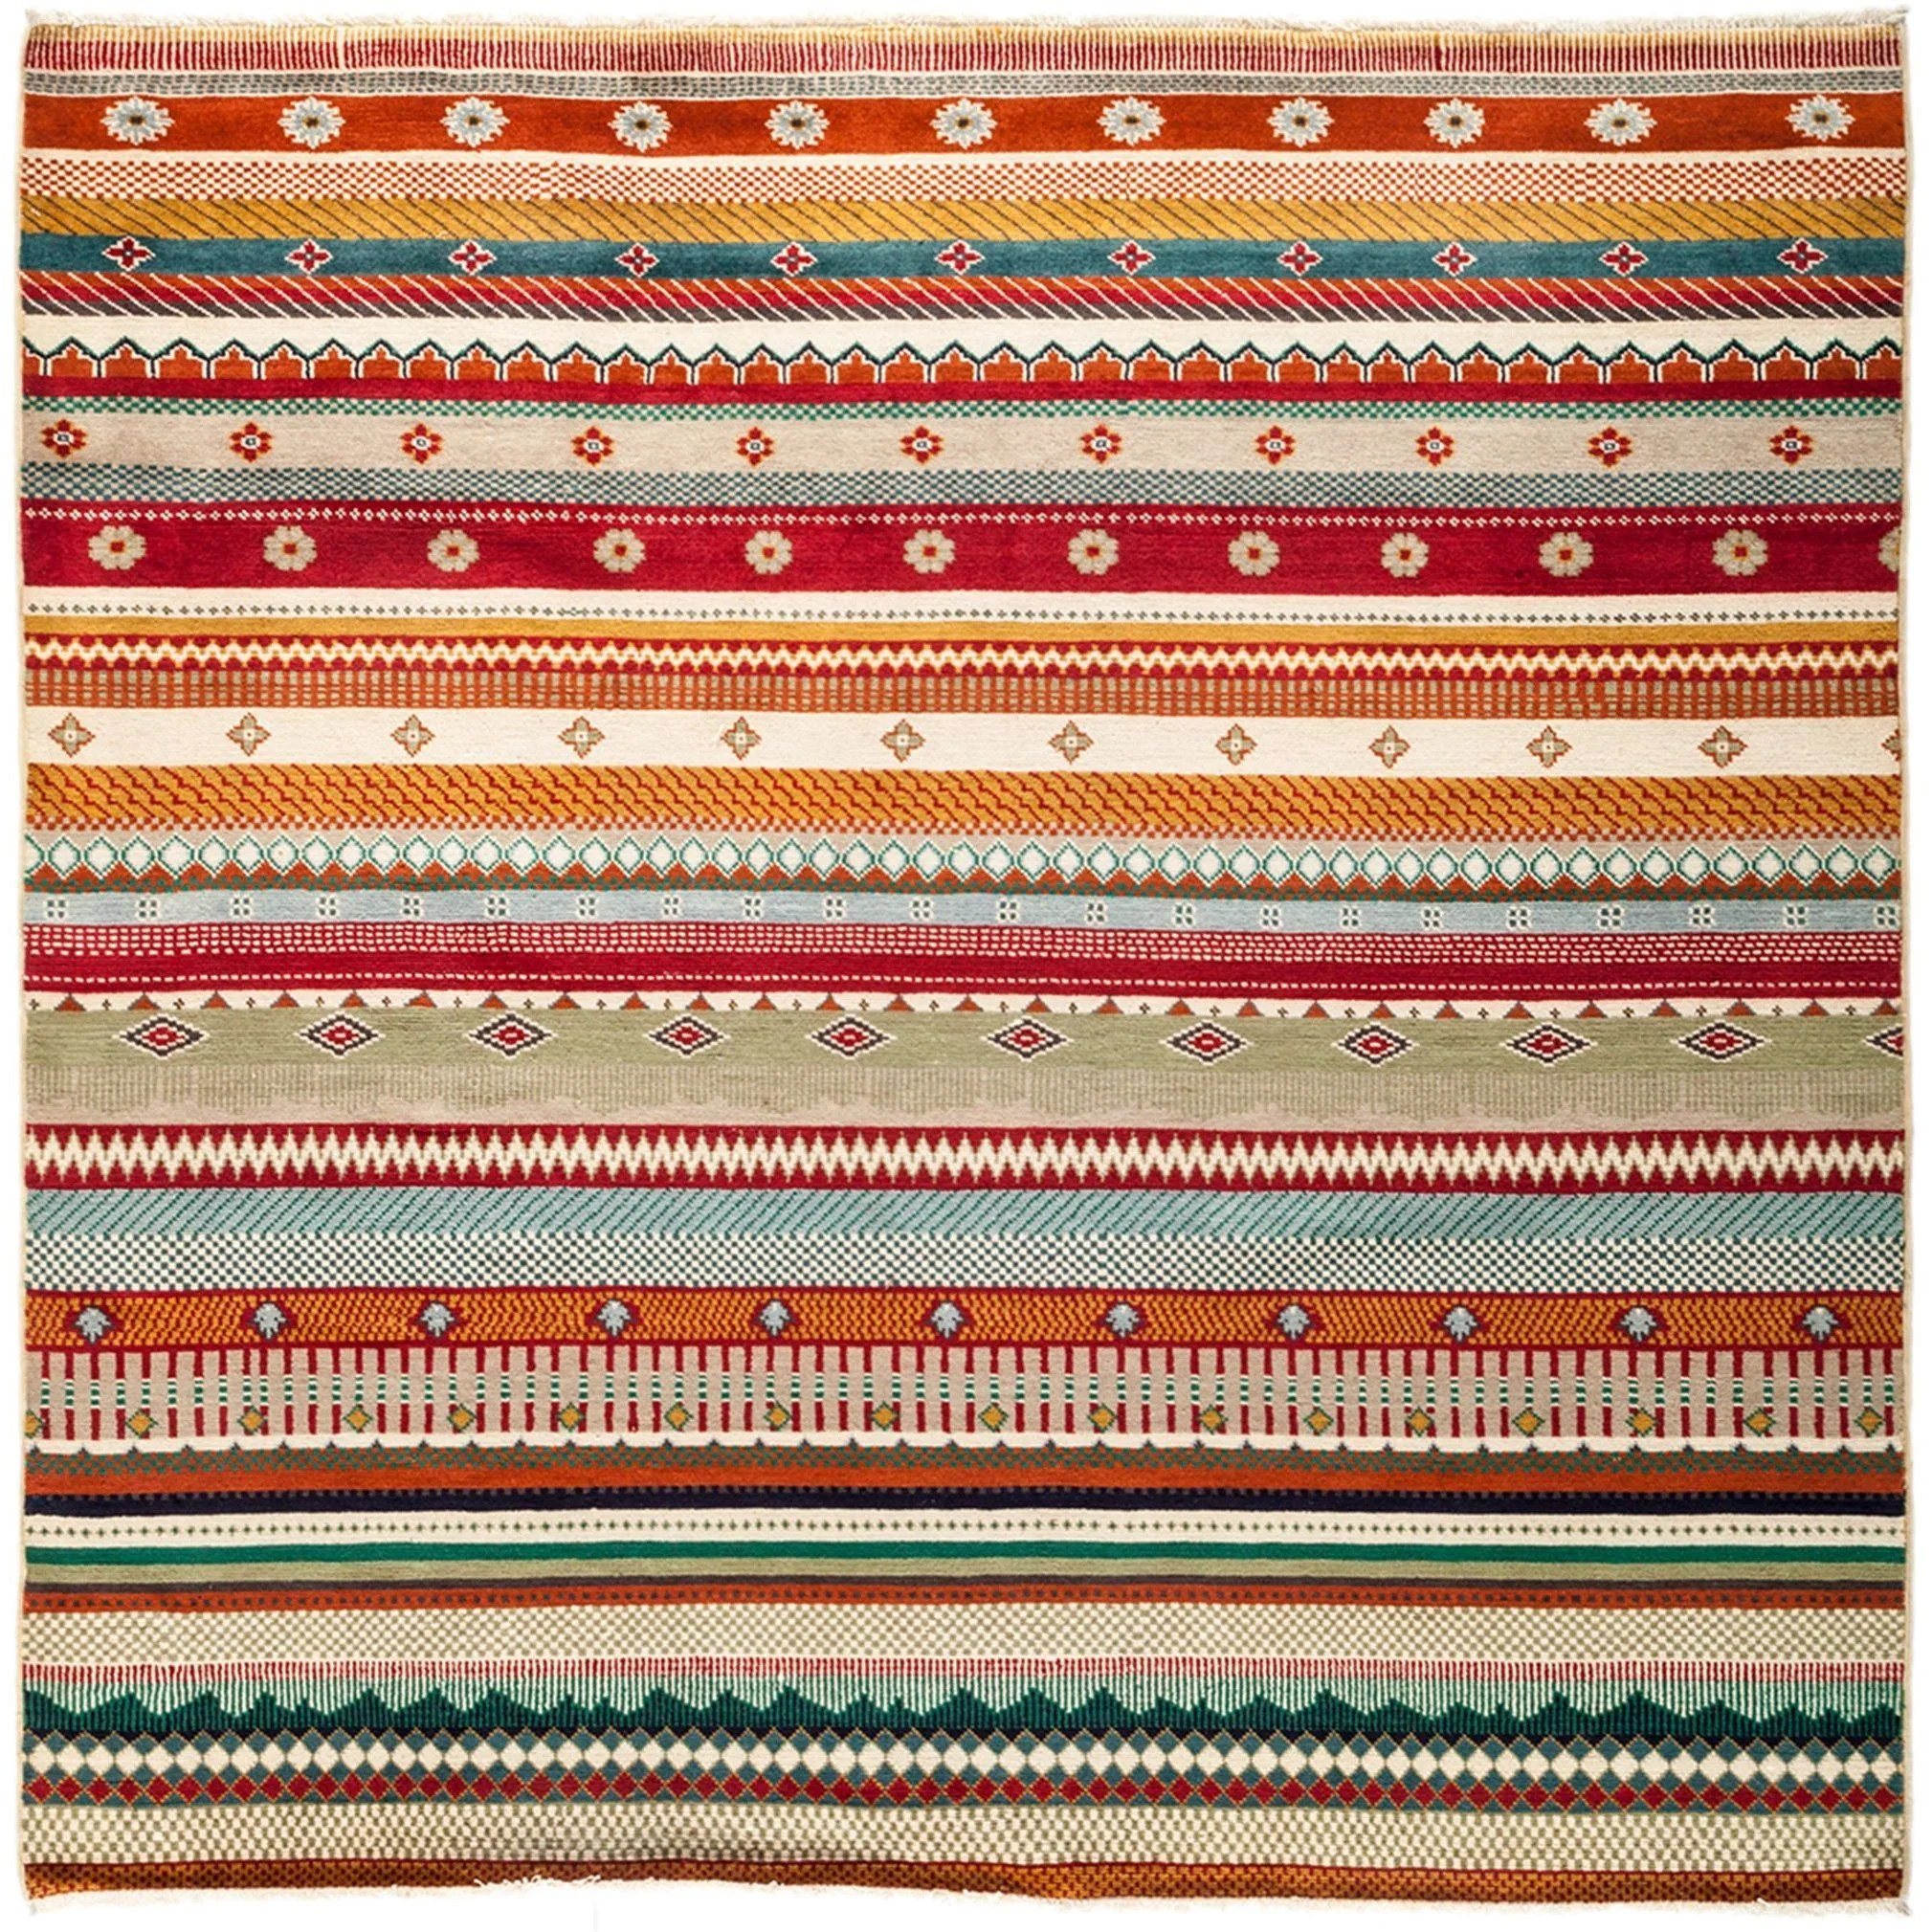 Kamyabeh Hand Knotted Area Rug - Multi